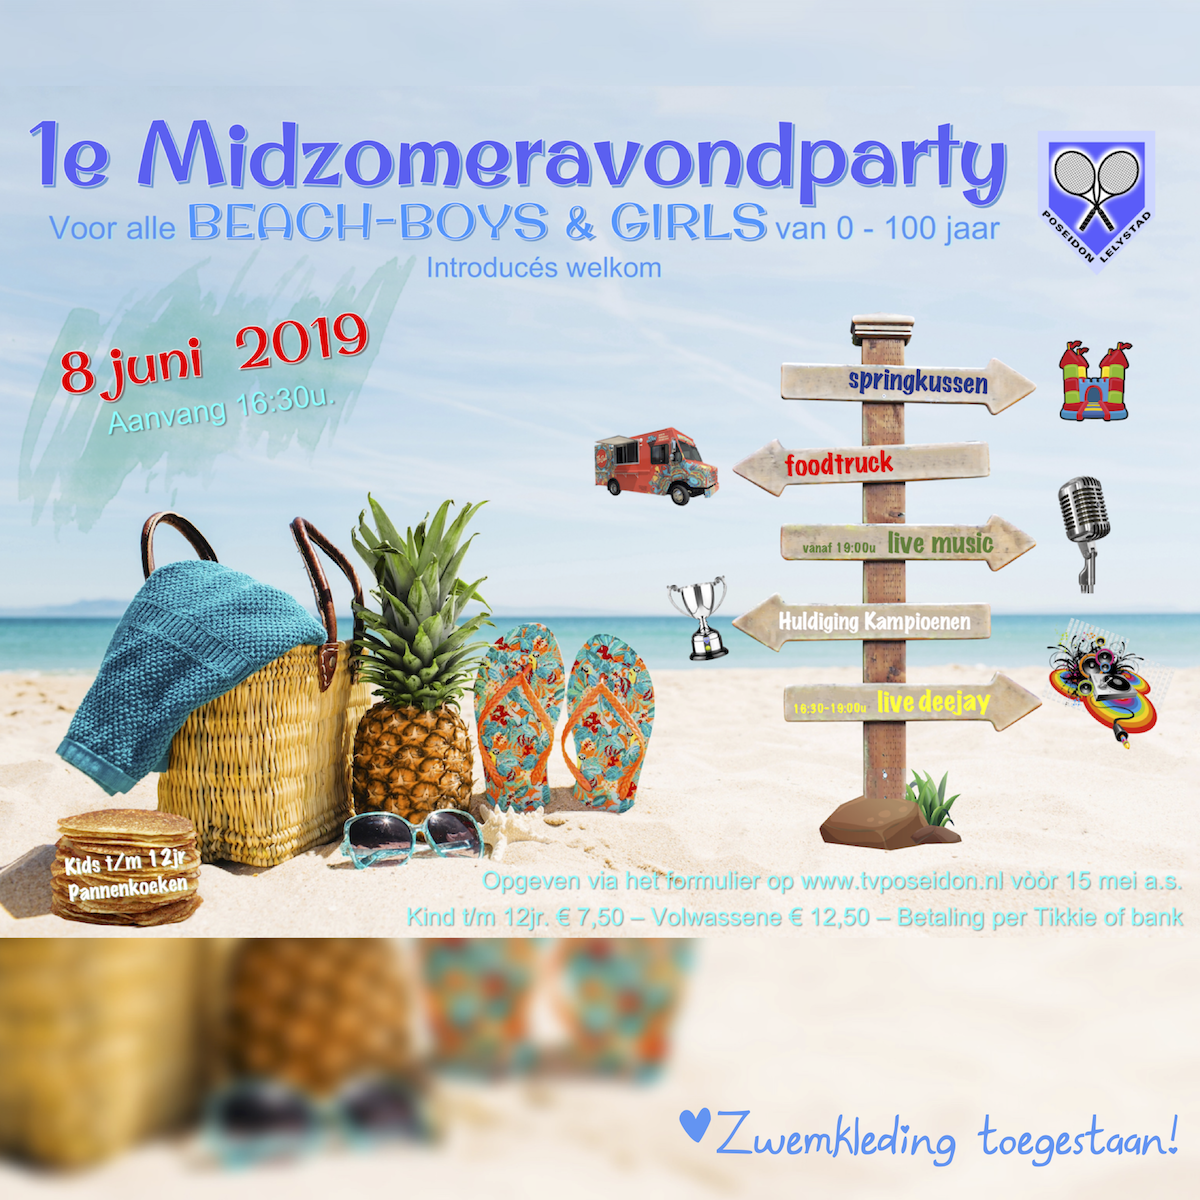 1e Midzomeravondparty